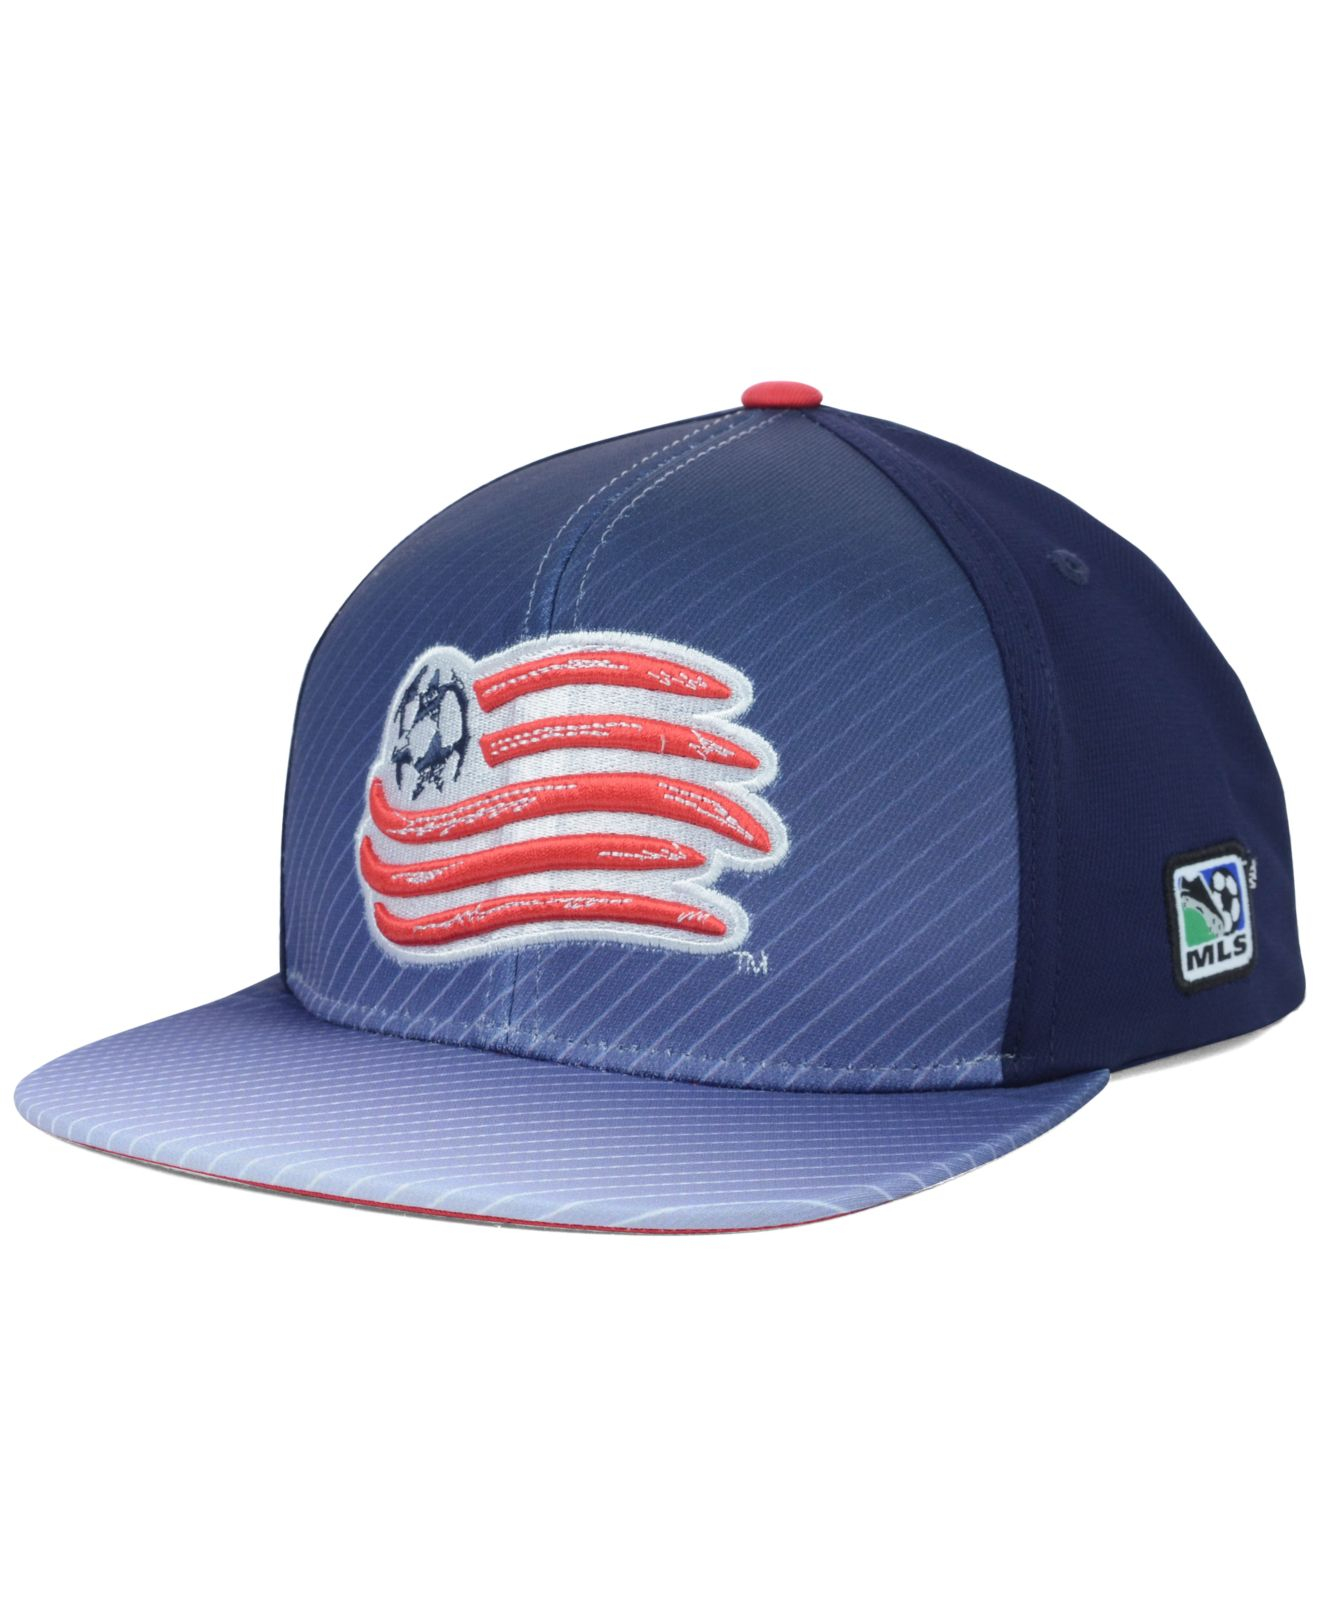 wholesale dealer 1a4ba f8501 adidas New England Revolution Mls Player Snapback Cap in Blue for ...